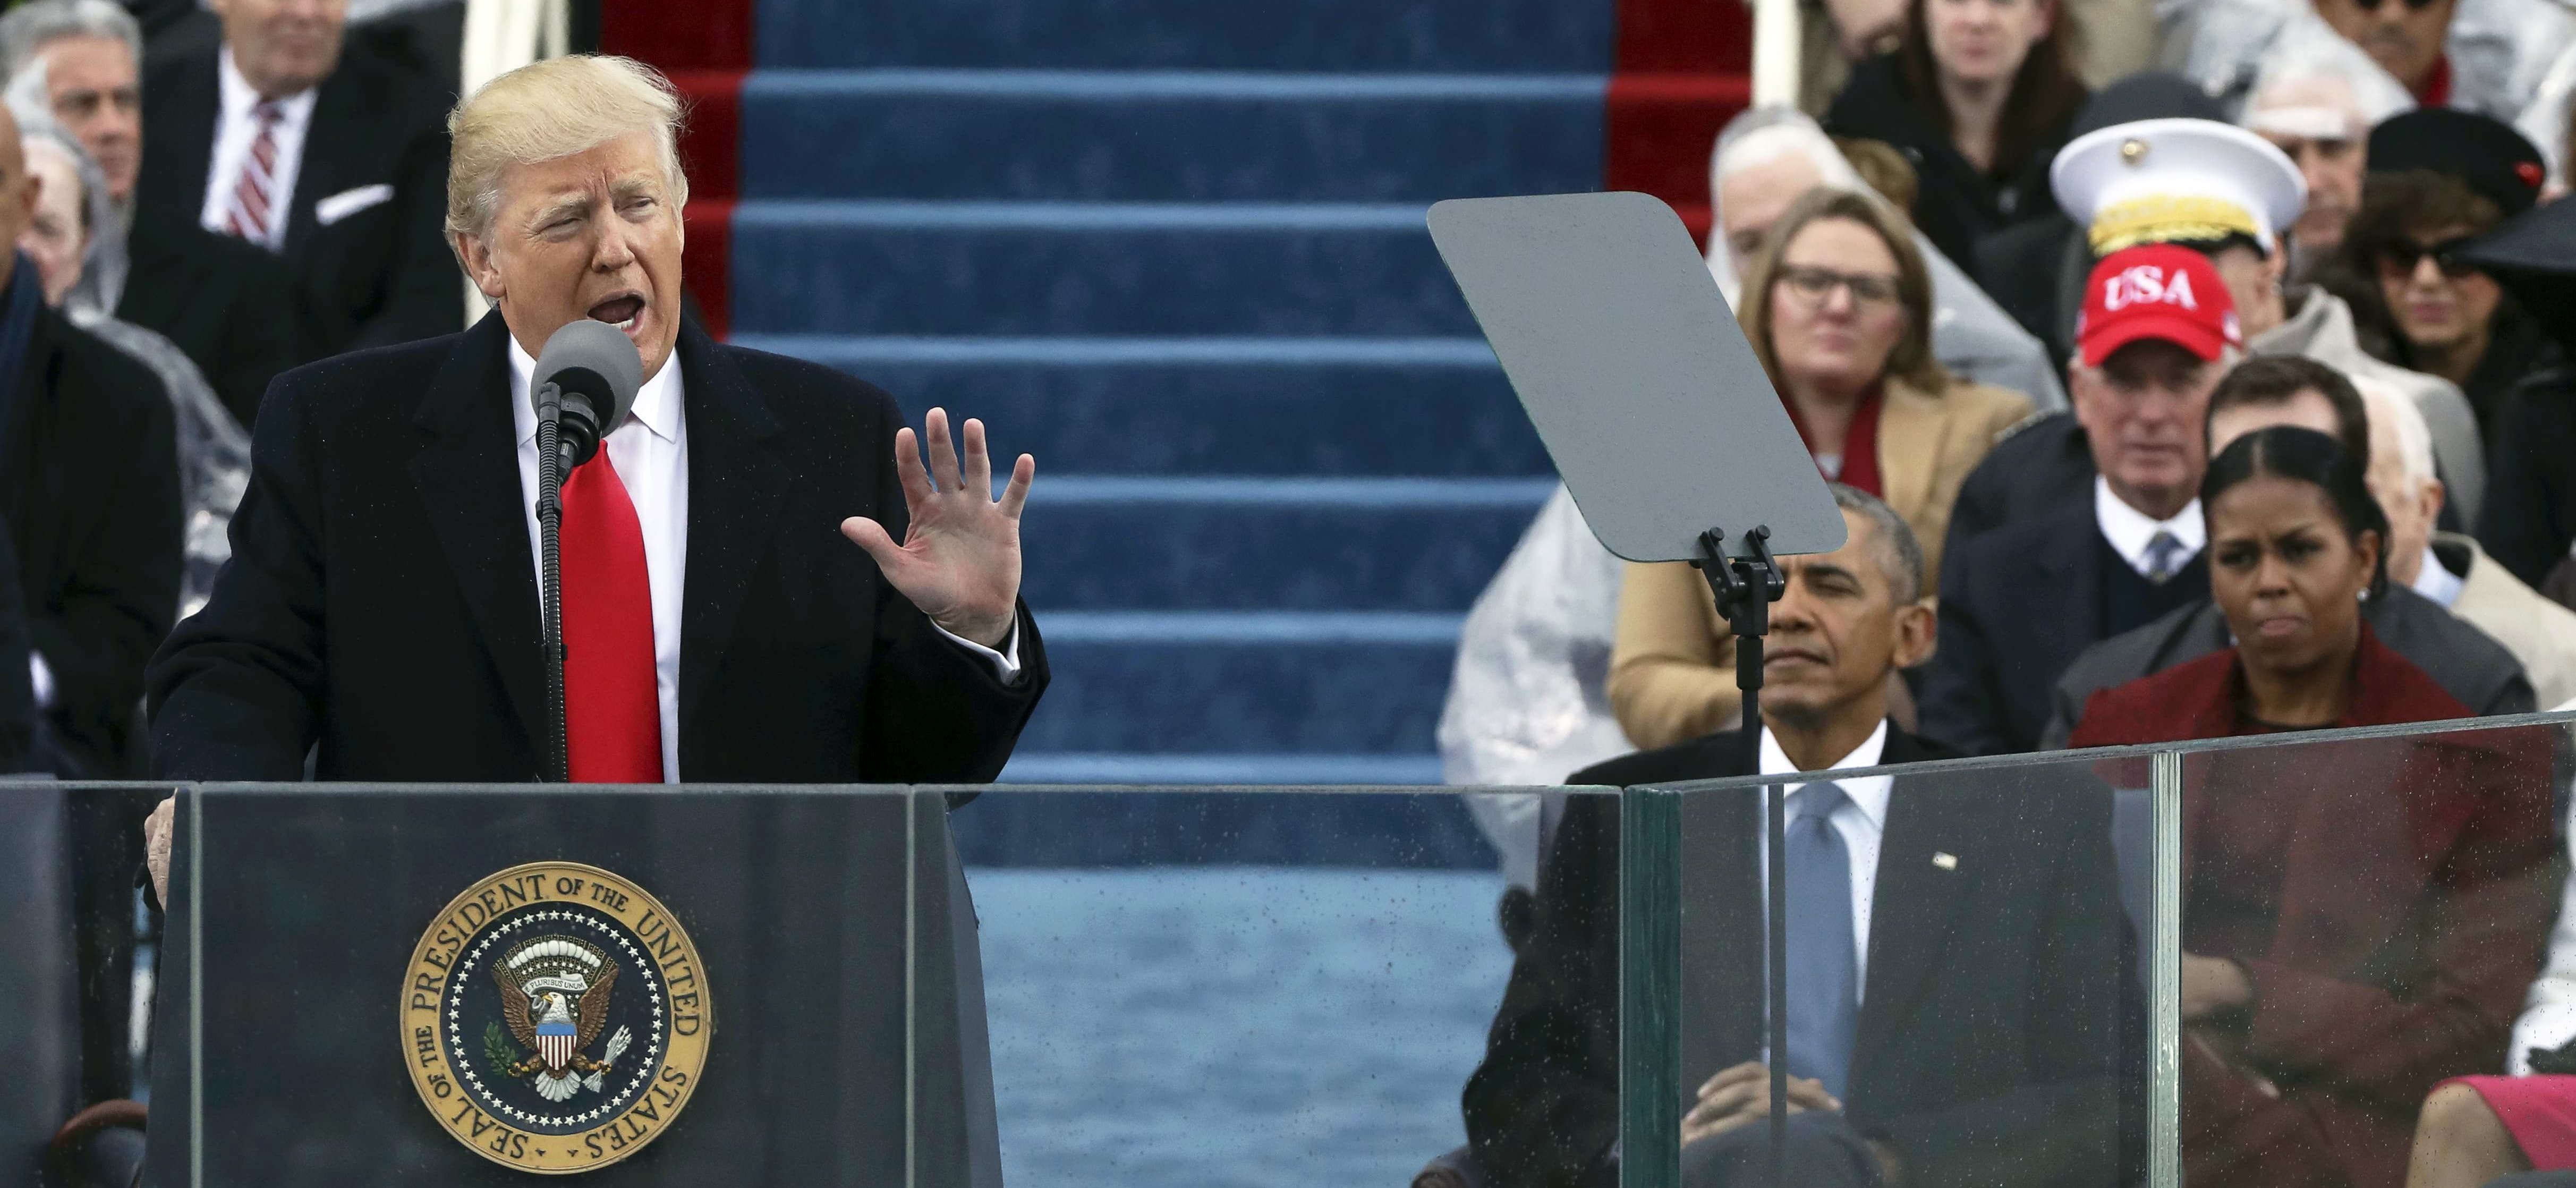 President Donald Trump (L) speaks at inauguration ceremonies swearing him in as the 45th president of the United States on the West front of the U.S. Capitol in Washington, U.S., January 20, 2017. REUTERS/Carlos Barria